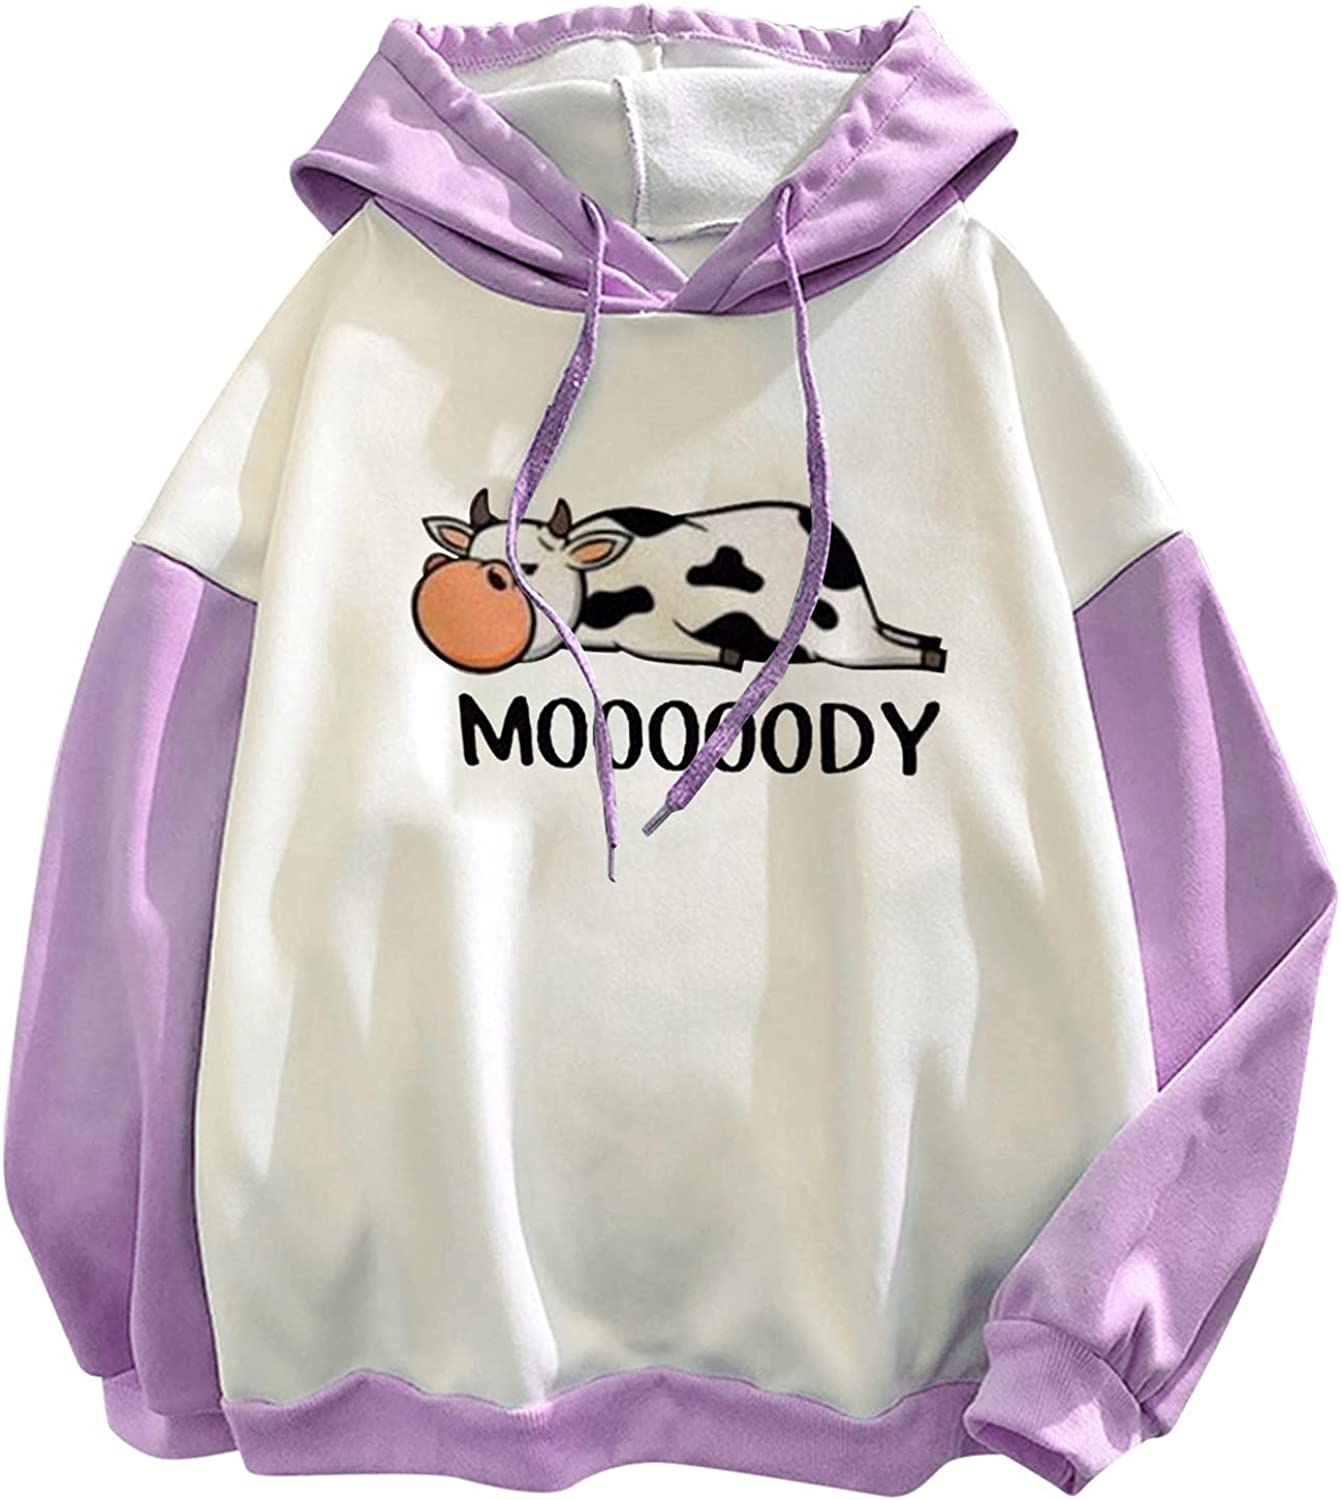 OFFicial mail order XXBR Hoodies for Womens Teen Girls Color P Block Print Cute Cow Award